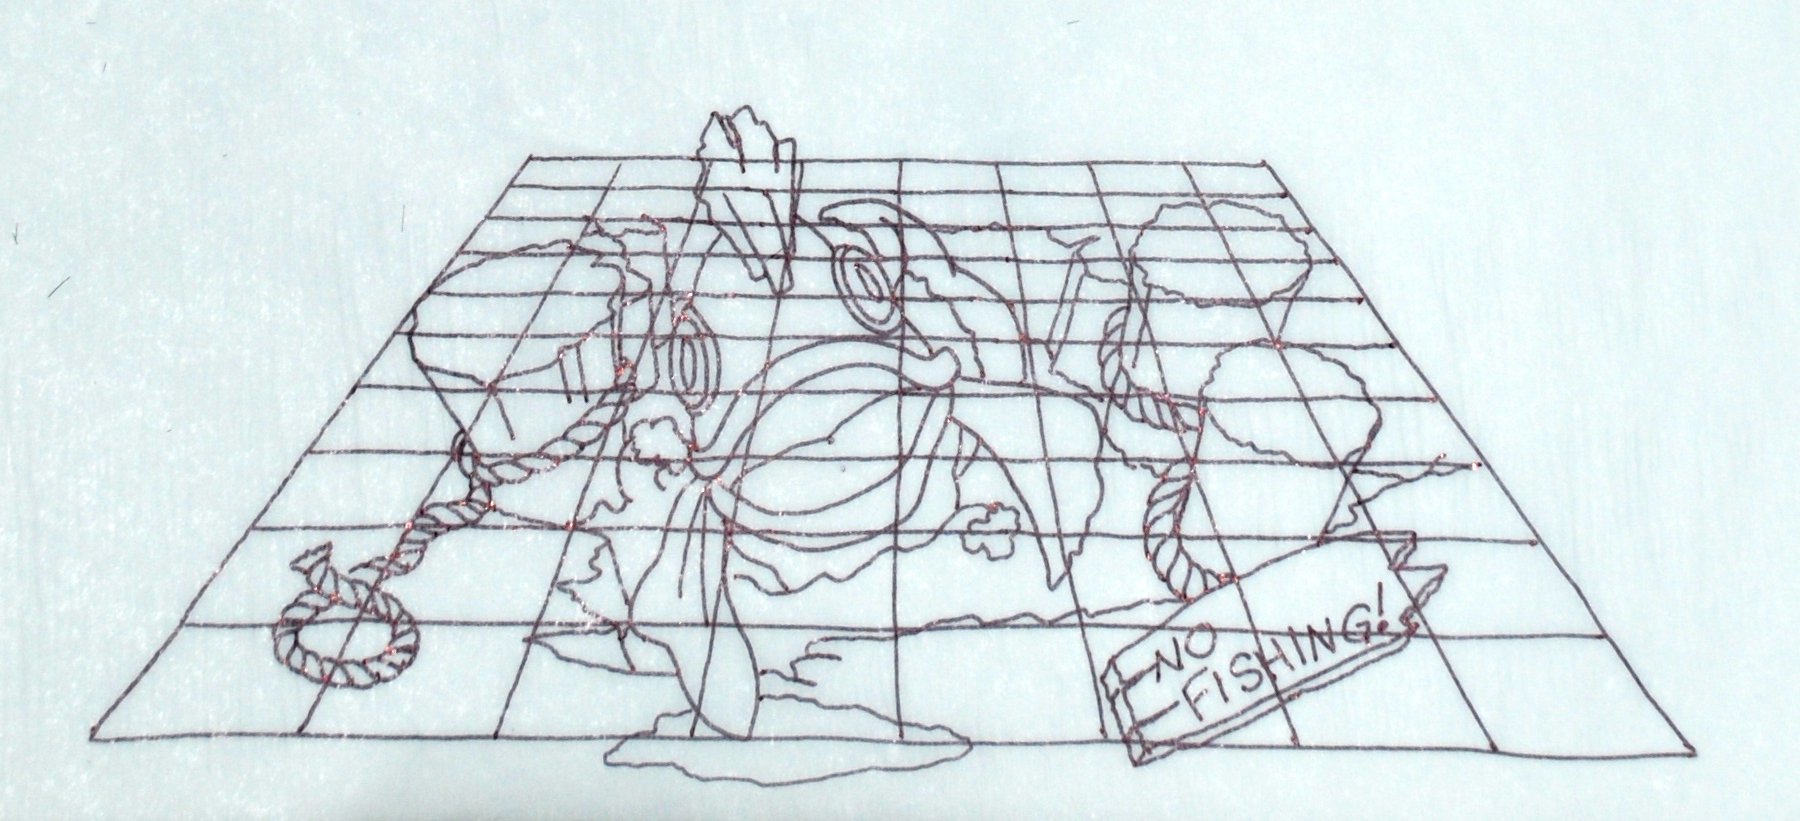 3d Grid Drawing at GetDrawings.com | Free for personal use 3d Grid ...